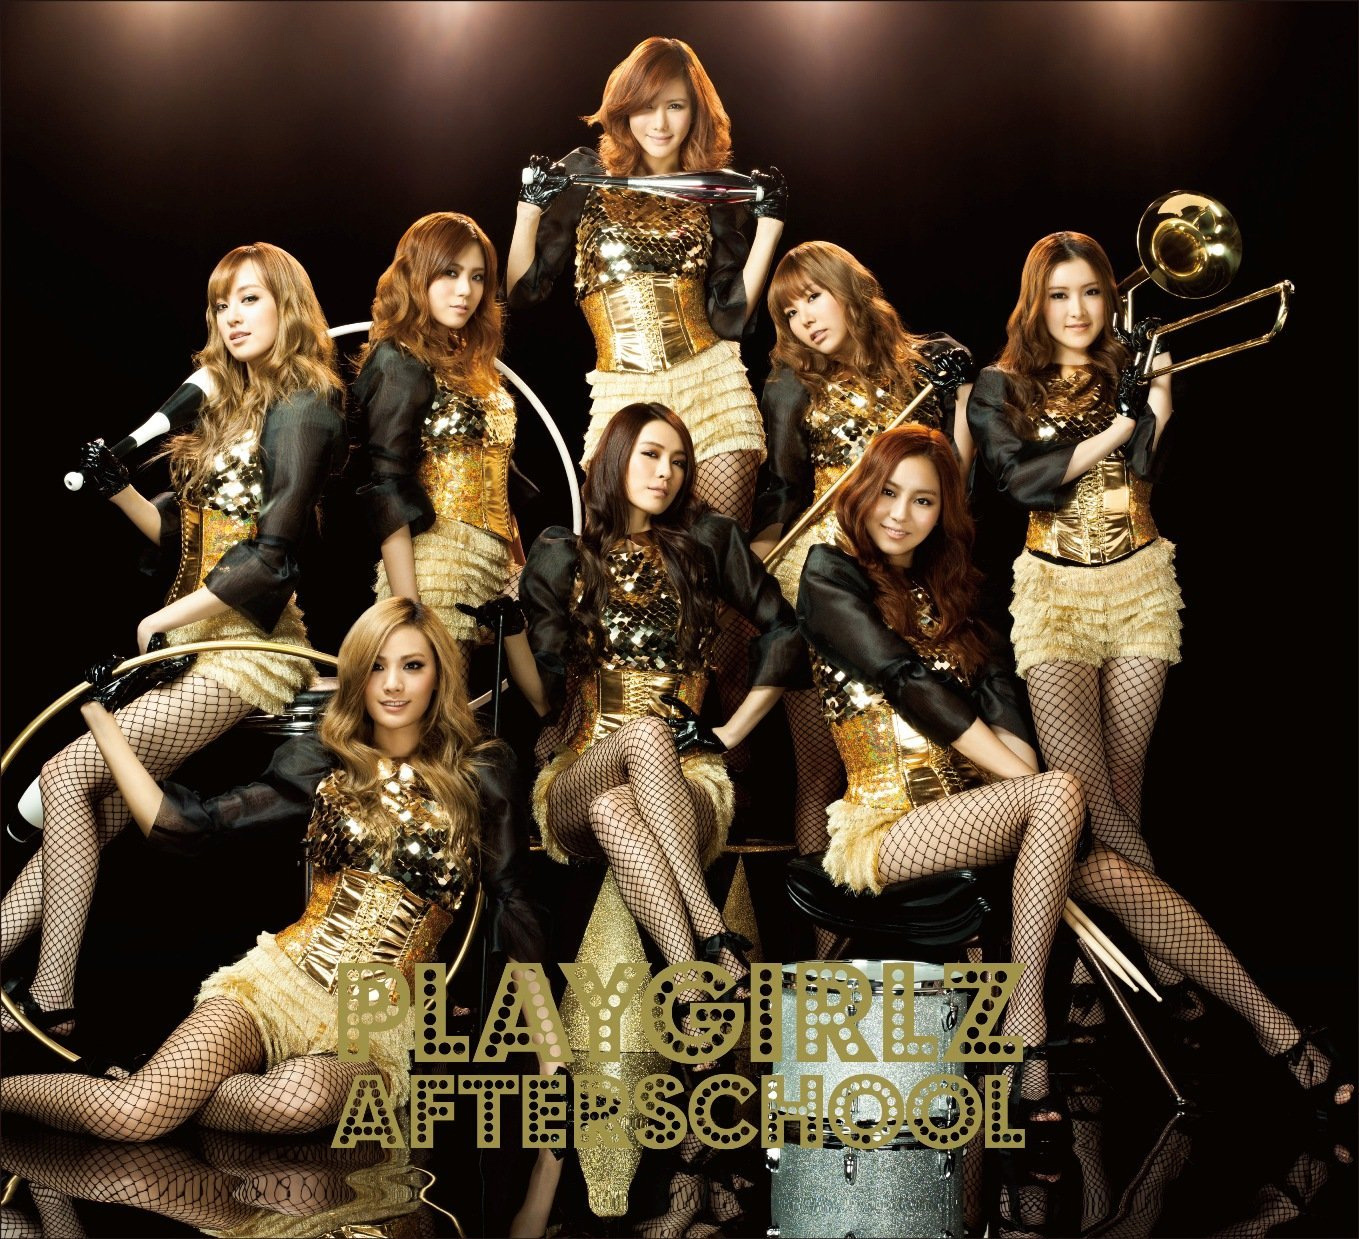 20170822.1309.2 After School - Playgirlz (Music Video edition) (DVD) cover.jpg